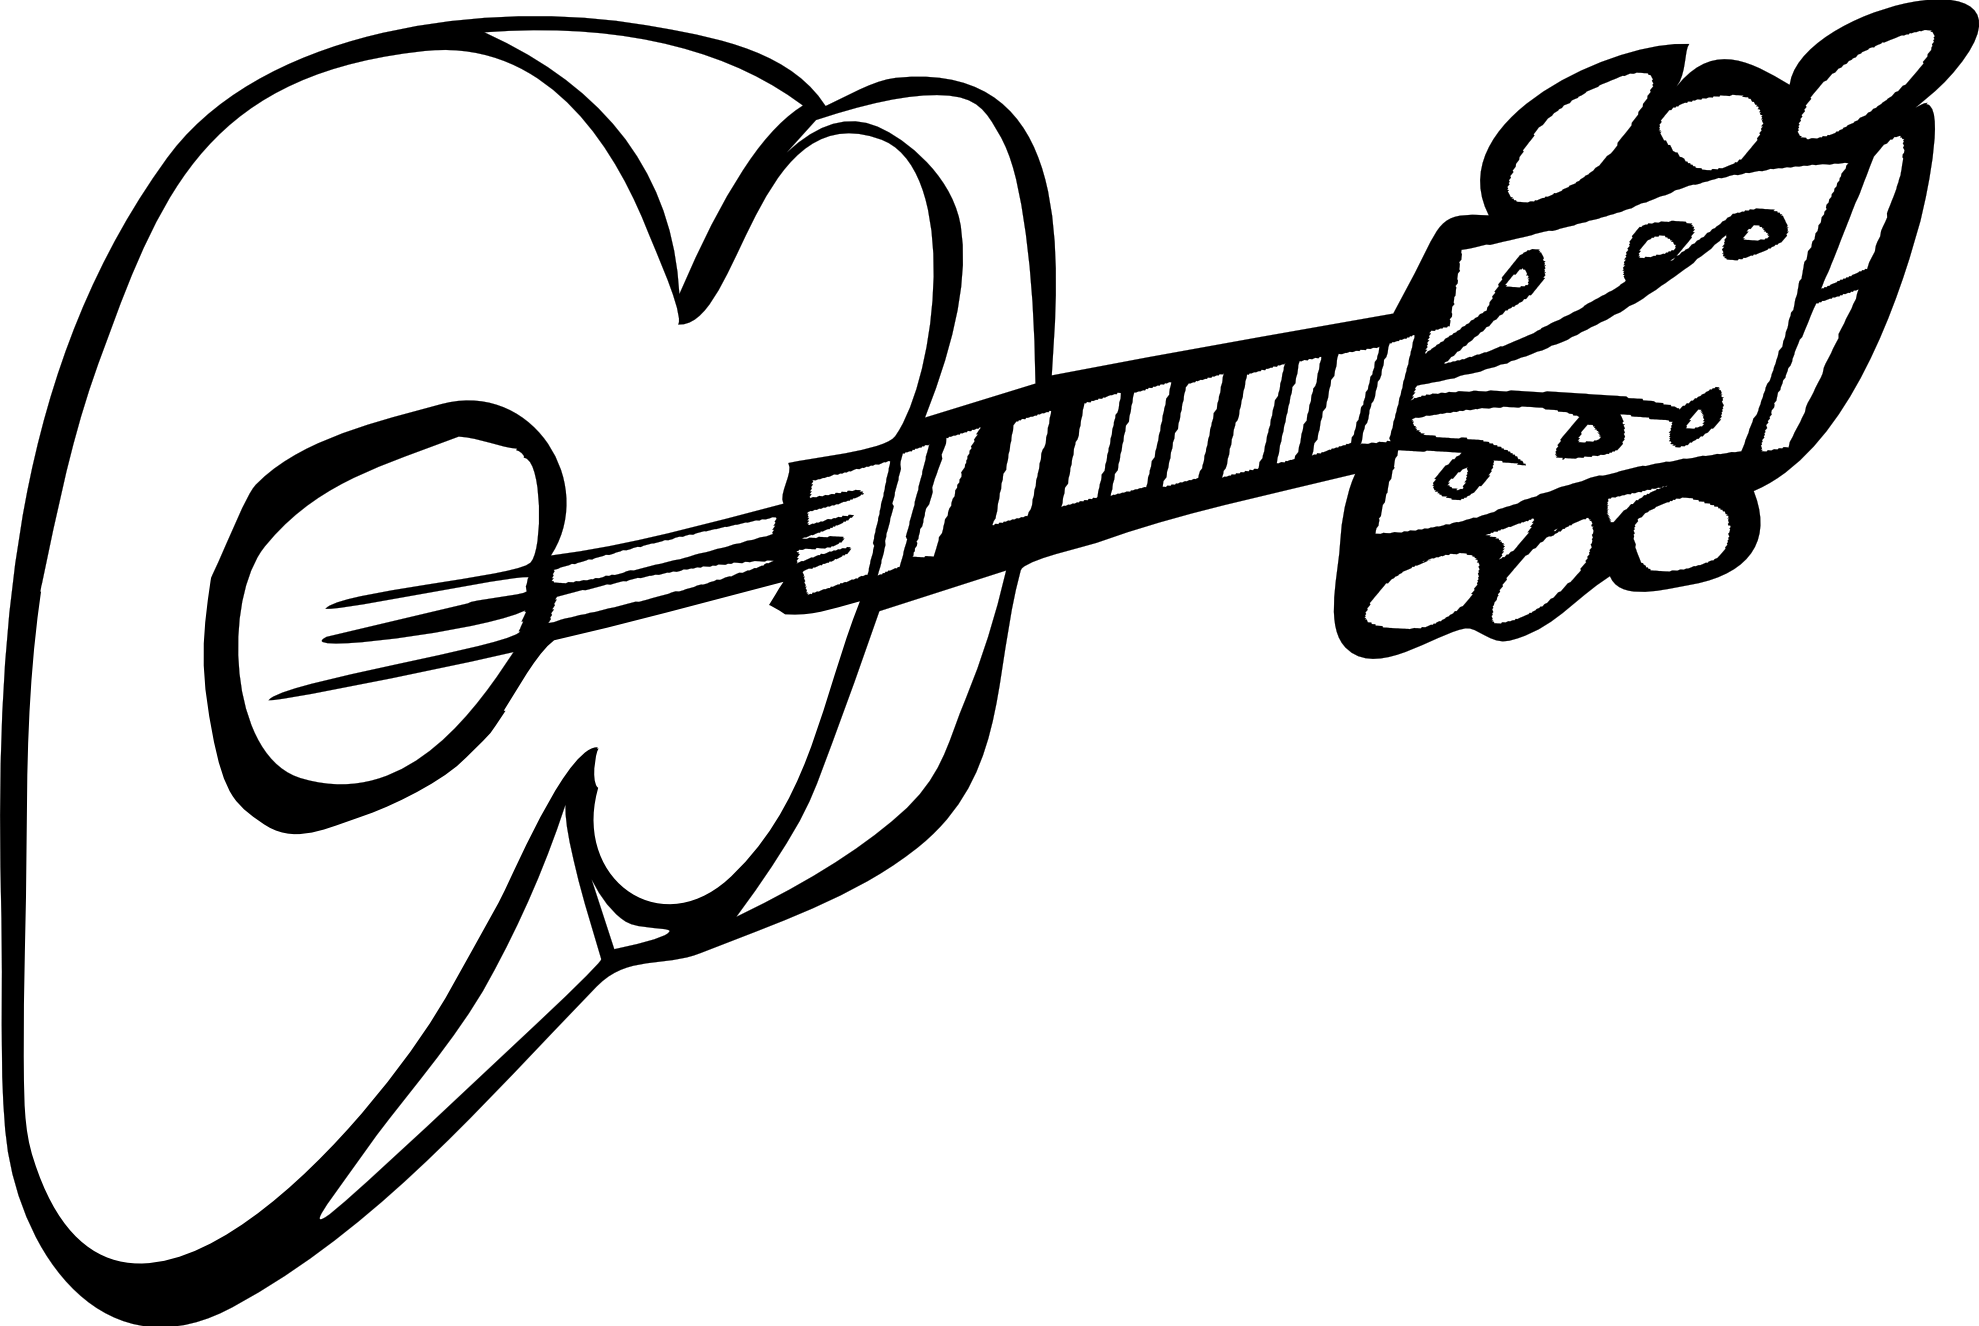 clipart free library 50s clipart black and white. Electric guitar panda free